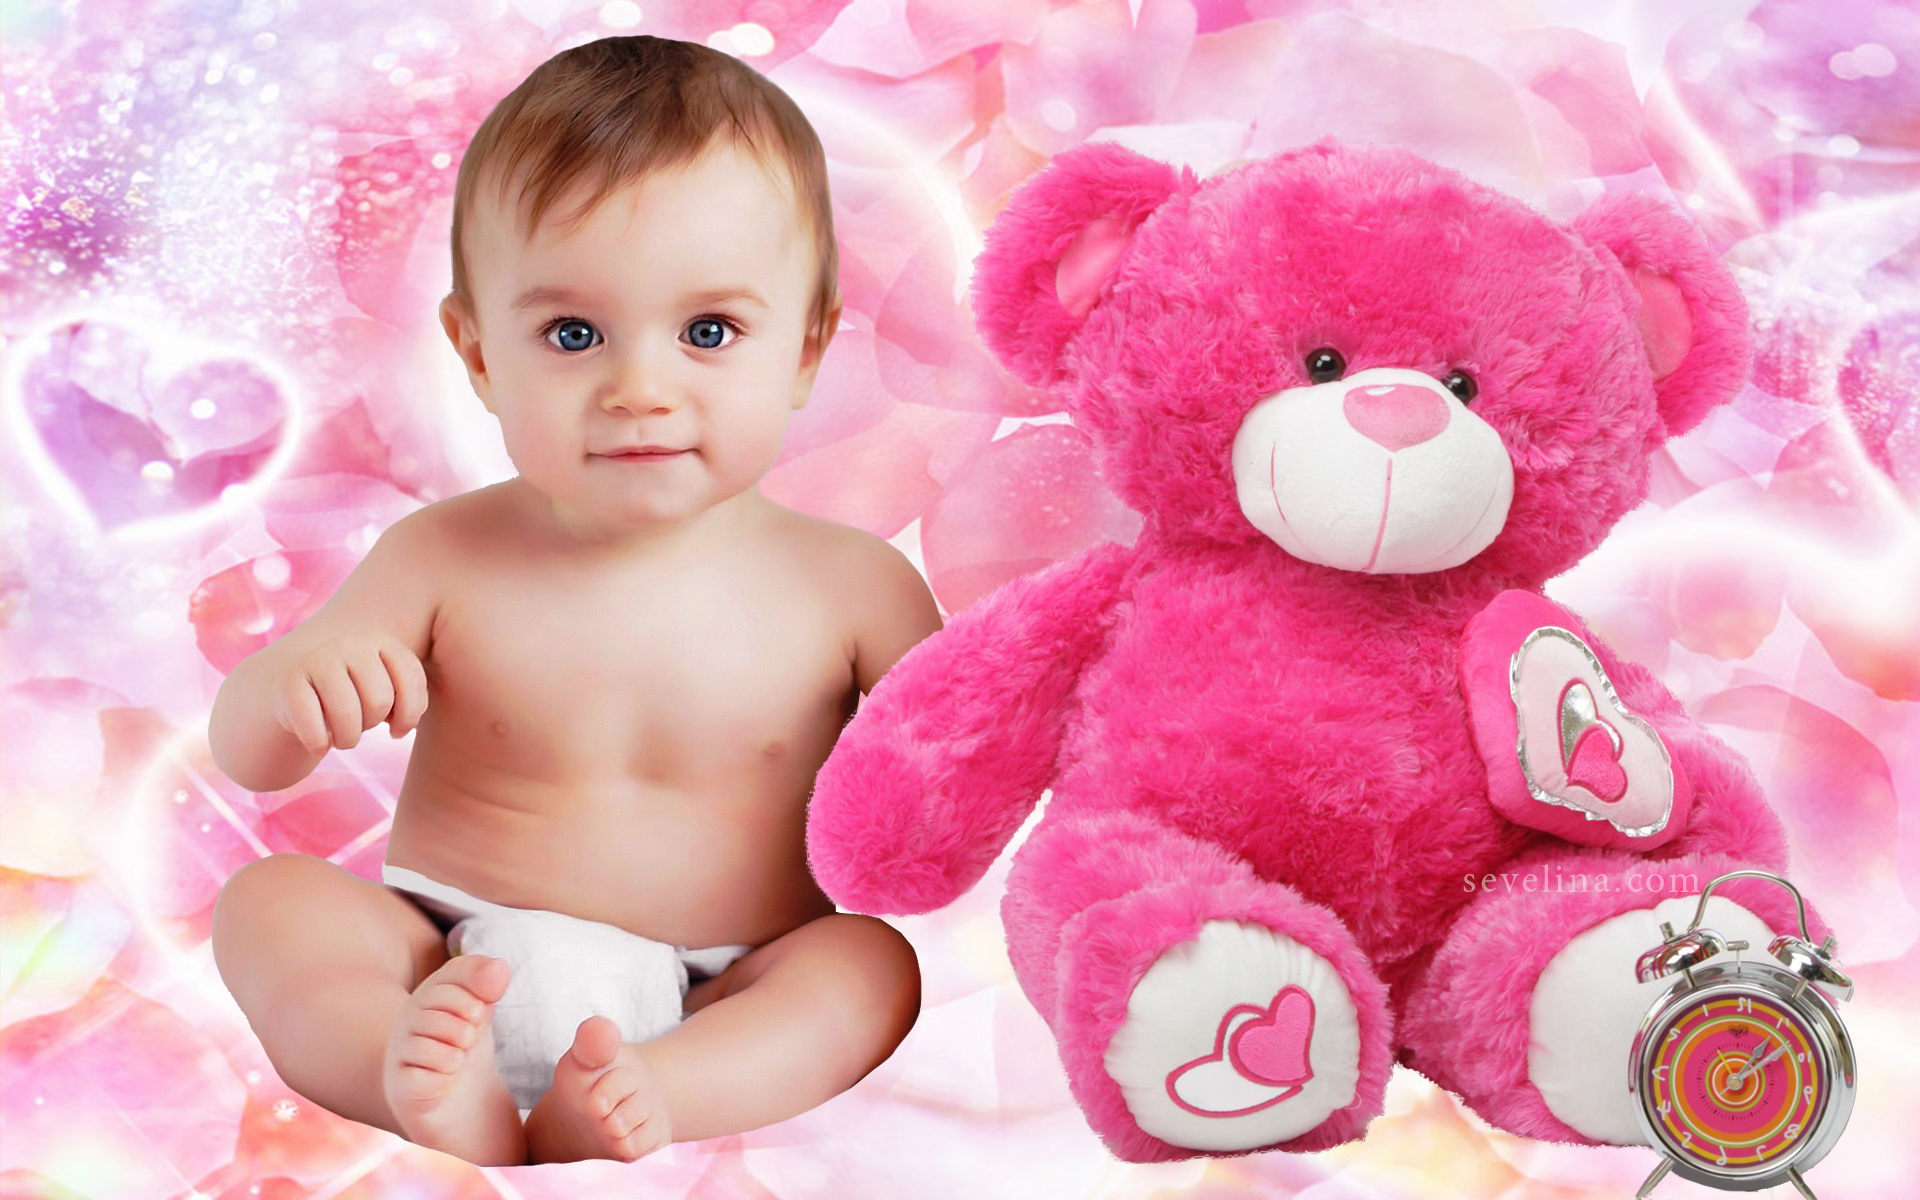 Baby And Teddy Love You Valentine Day Wallpapers 2014